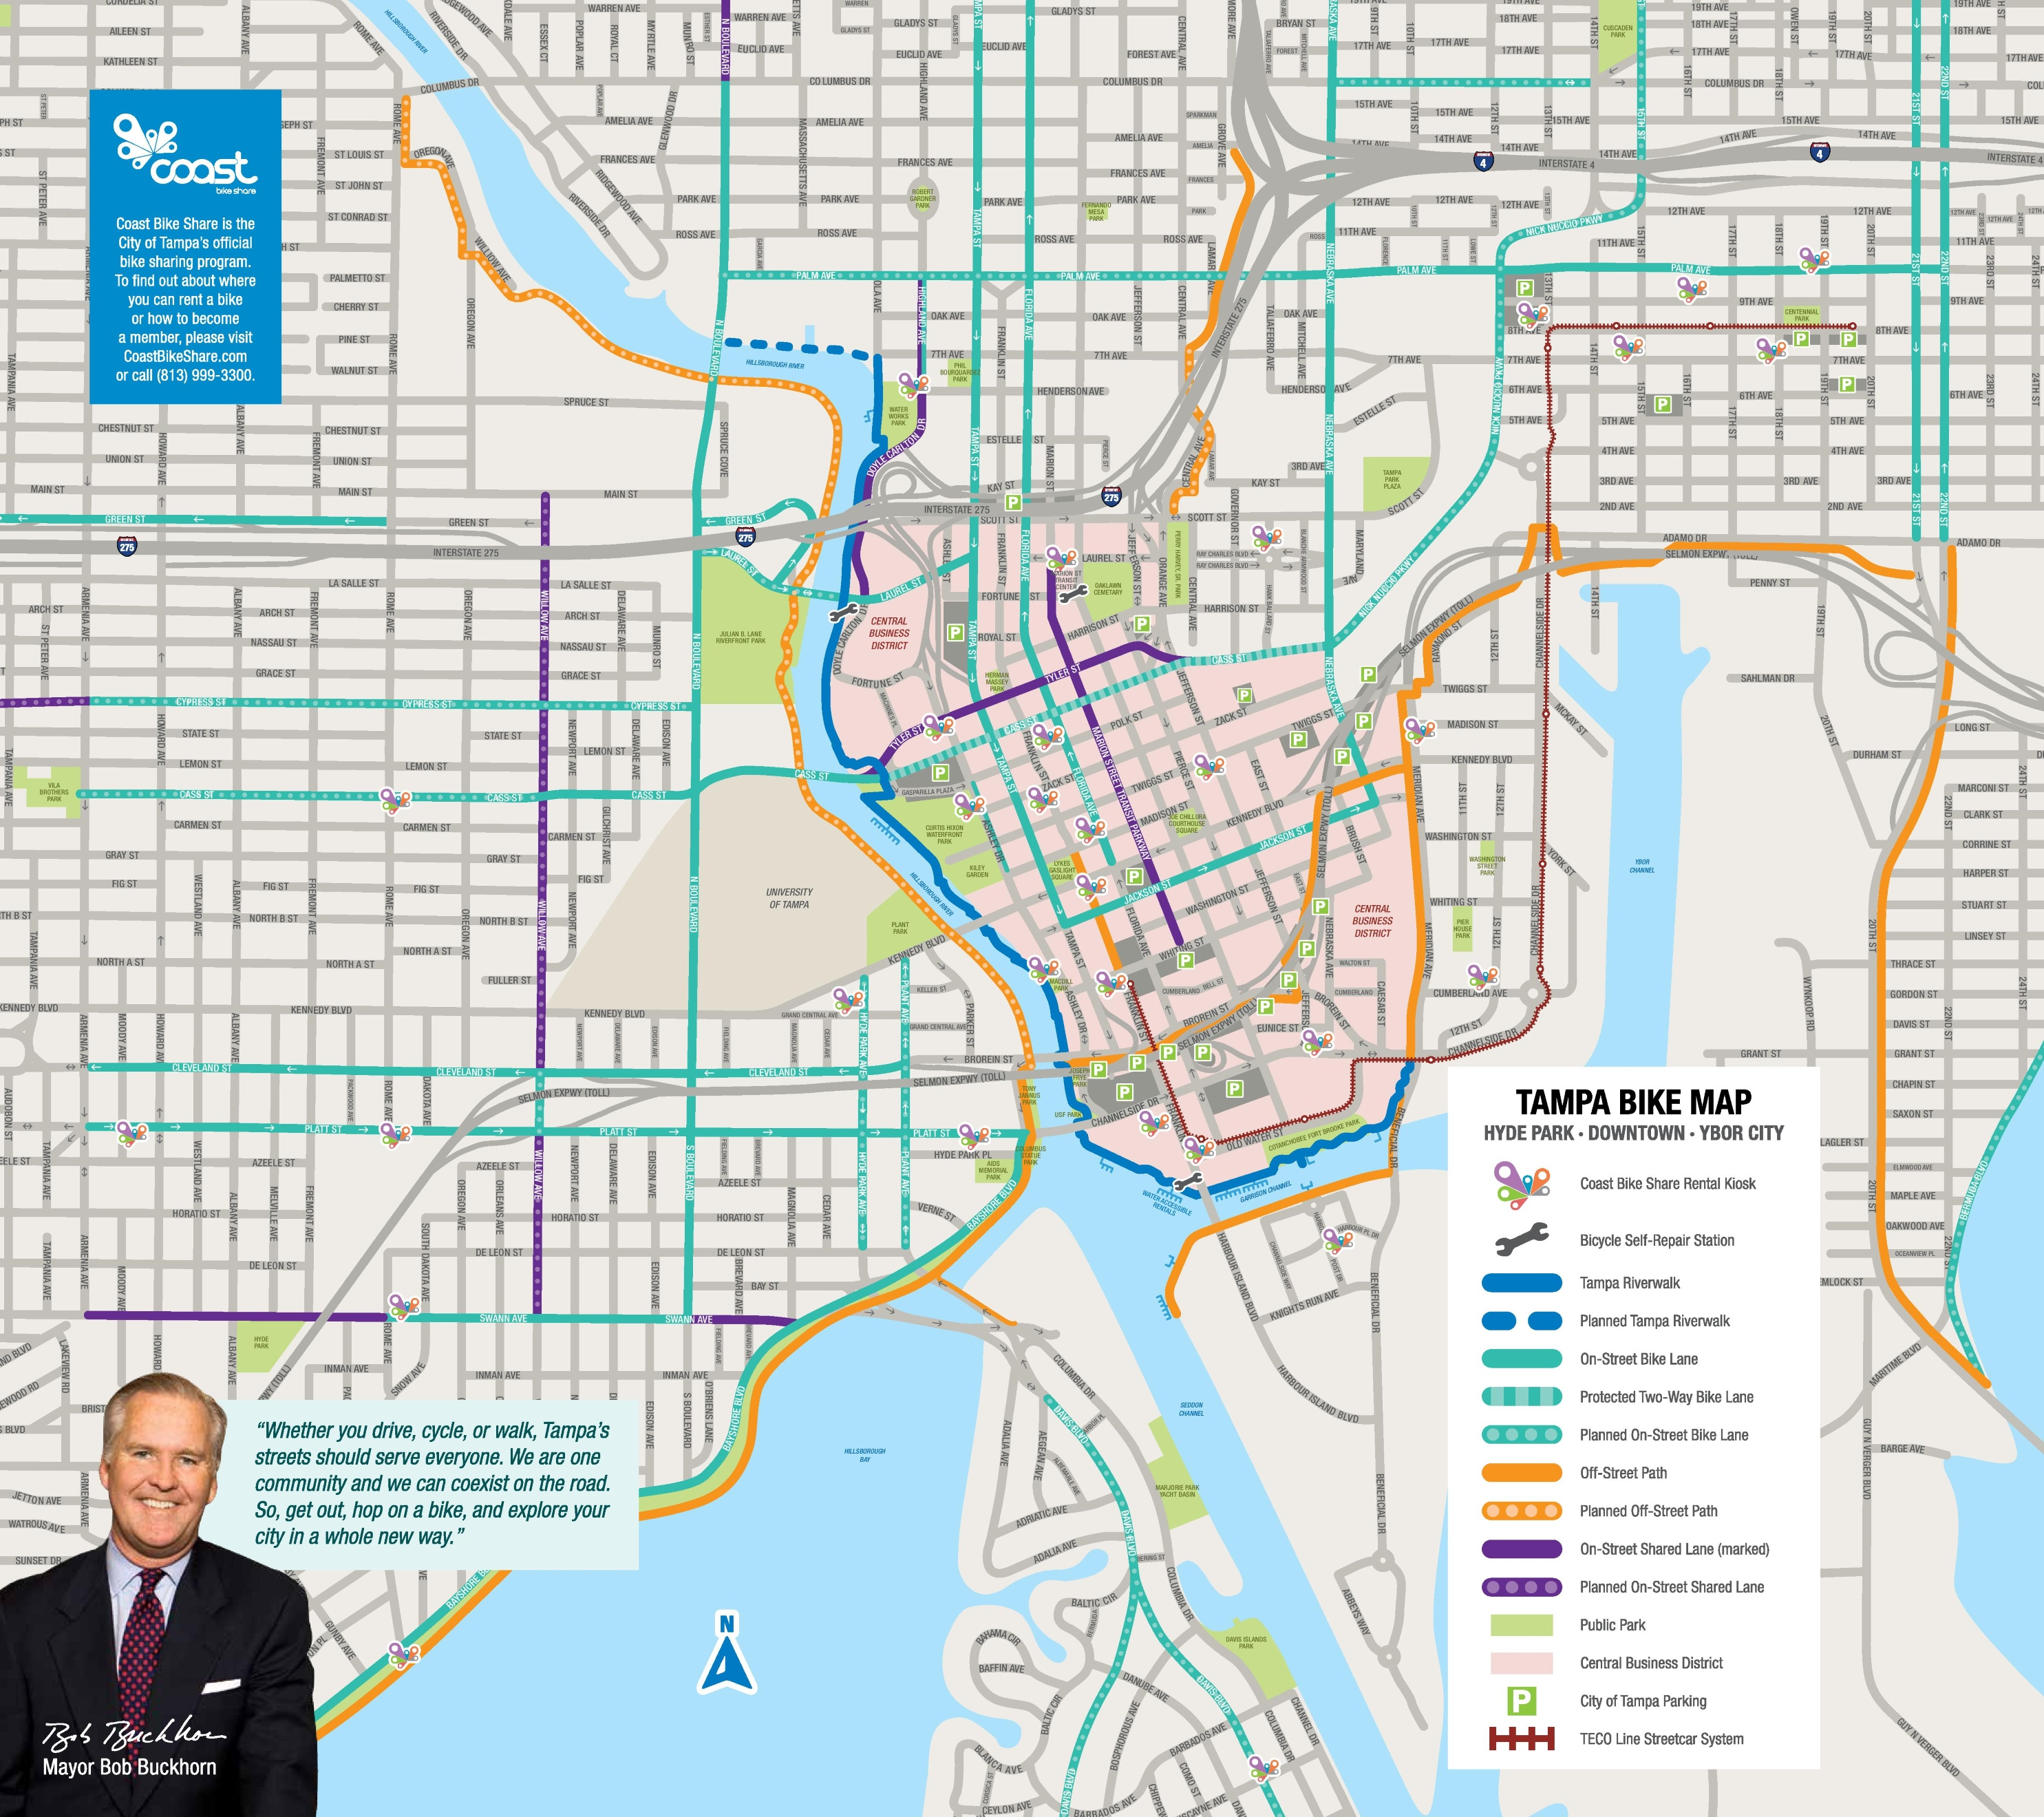 Tampa bike map